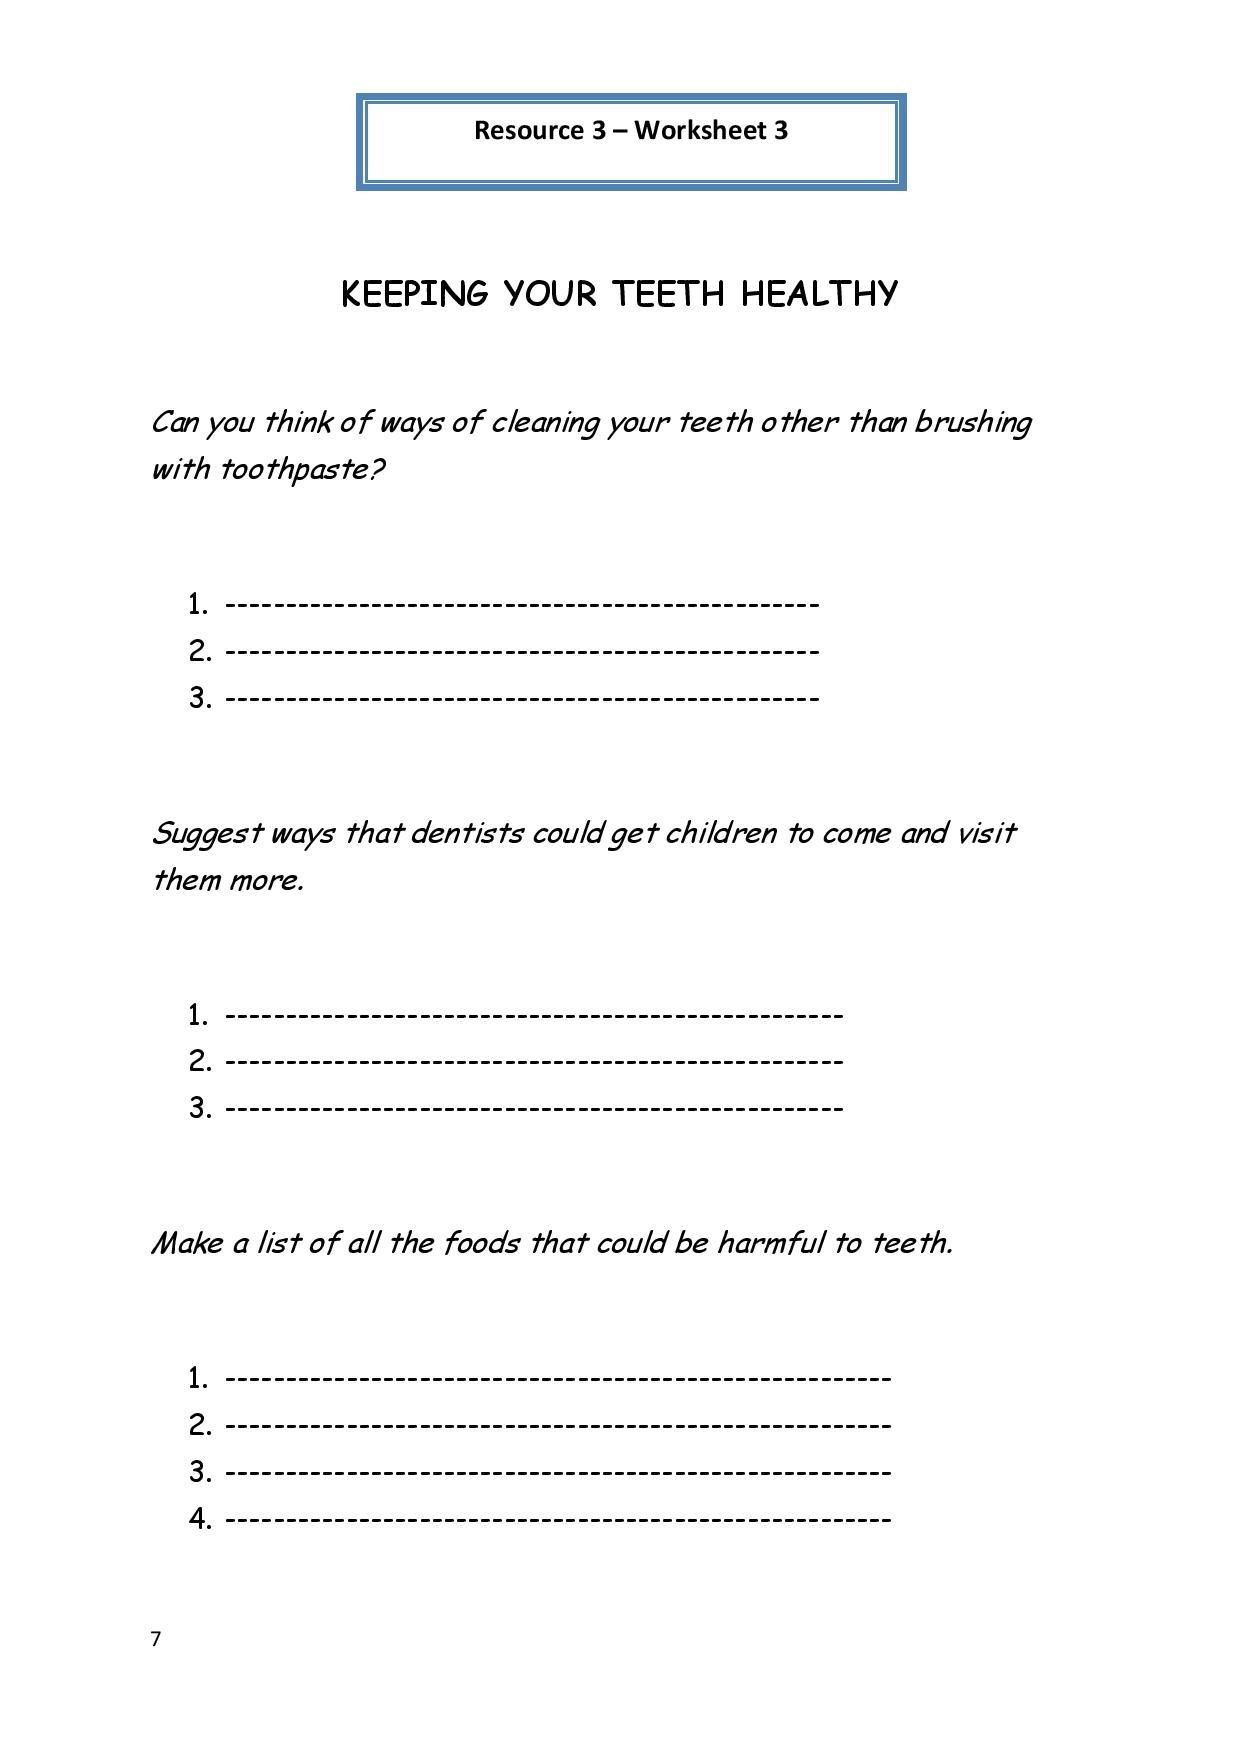 Personal Hygiene Worksheet 3 Keeping Your Teeth Healthy